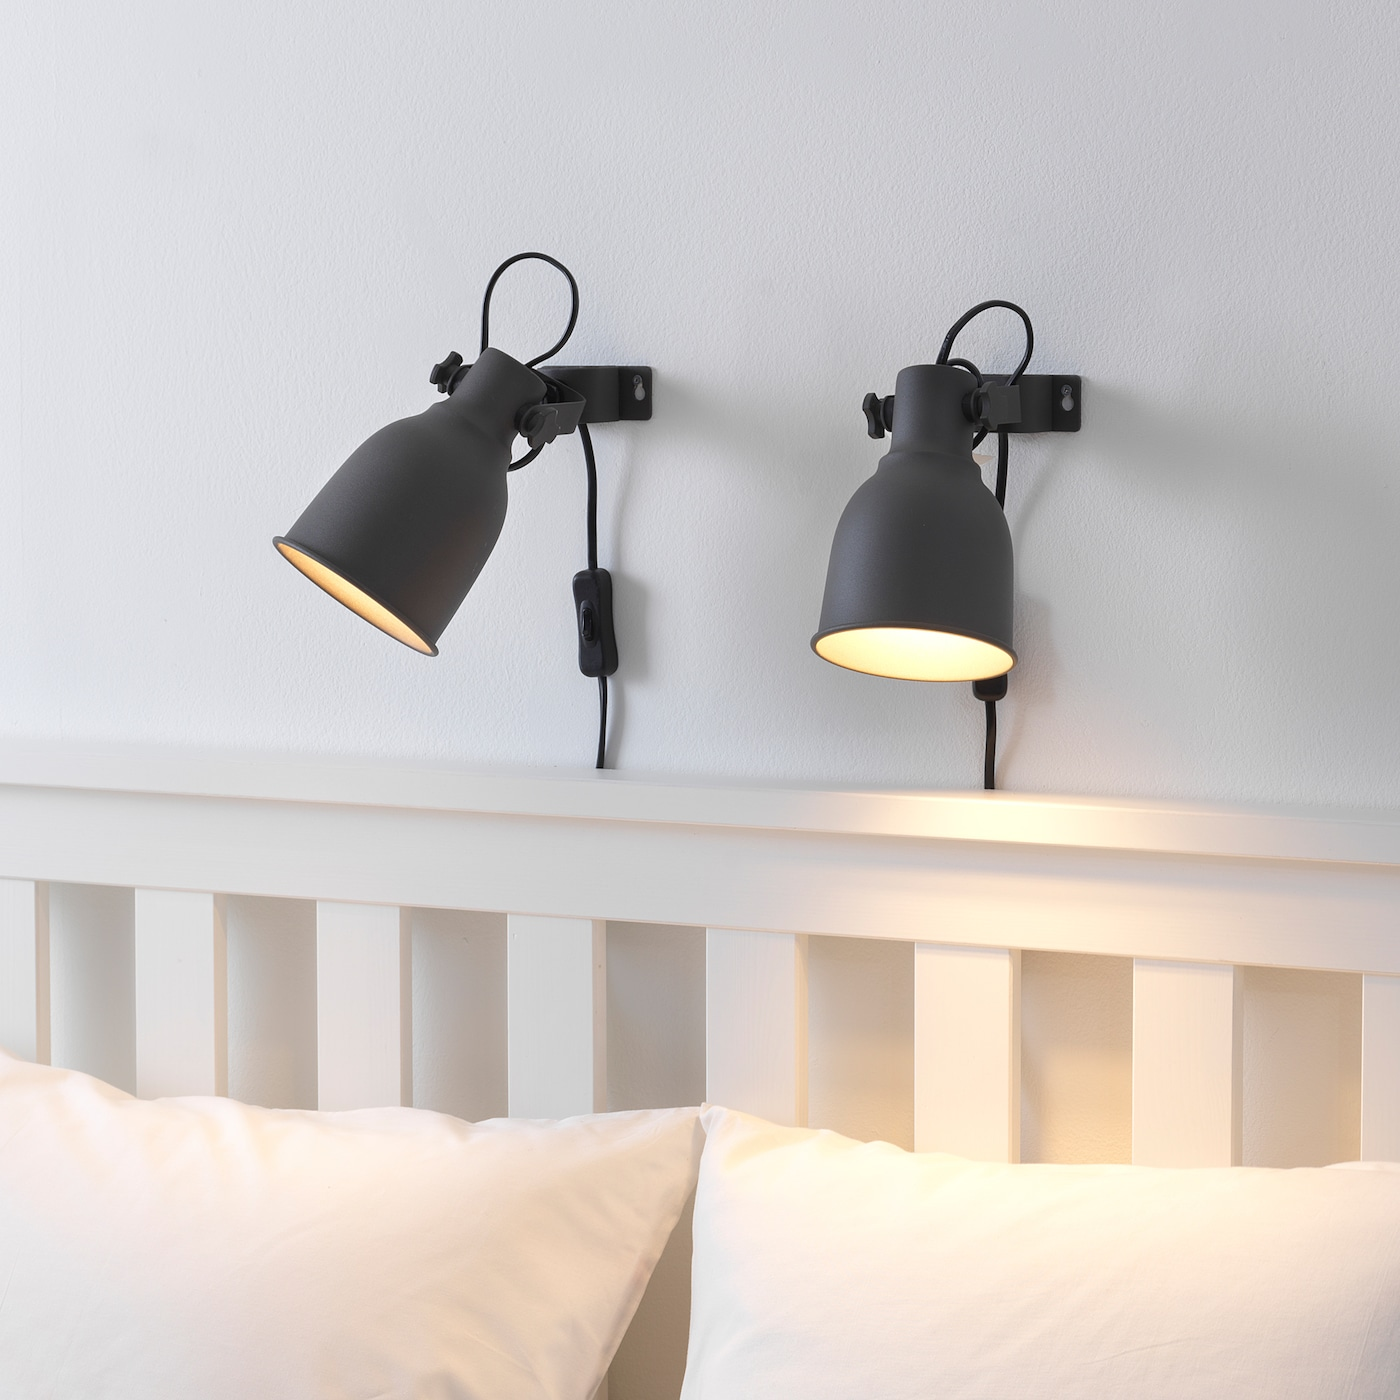 NEW in Package Ikea HEKTAR Wall Clamp Spotlight Clip on Led